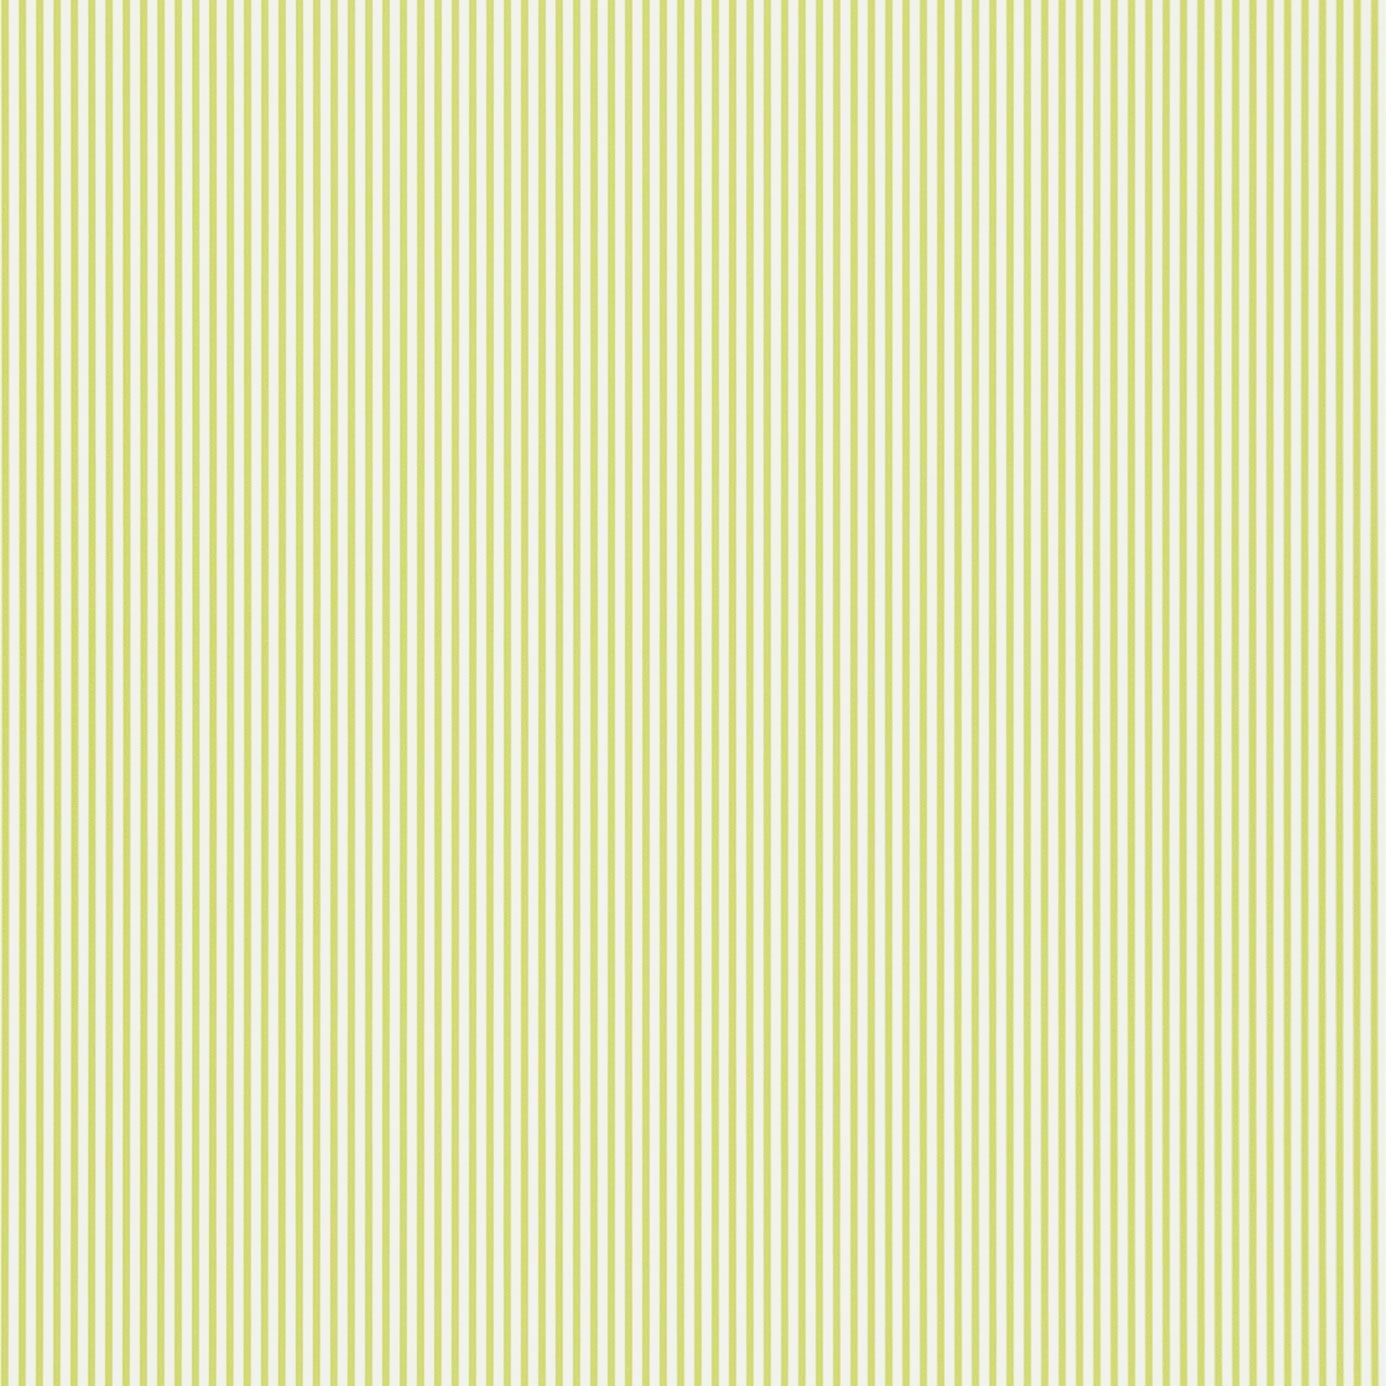 Green And White Striped Wallpaper Release Date Price and Specs 1386x1386